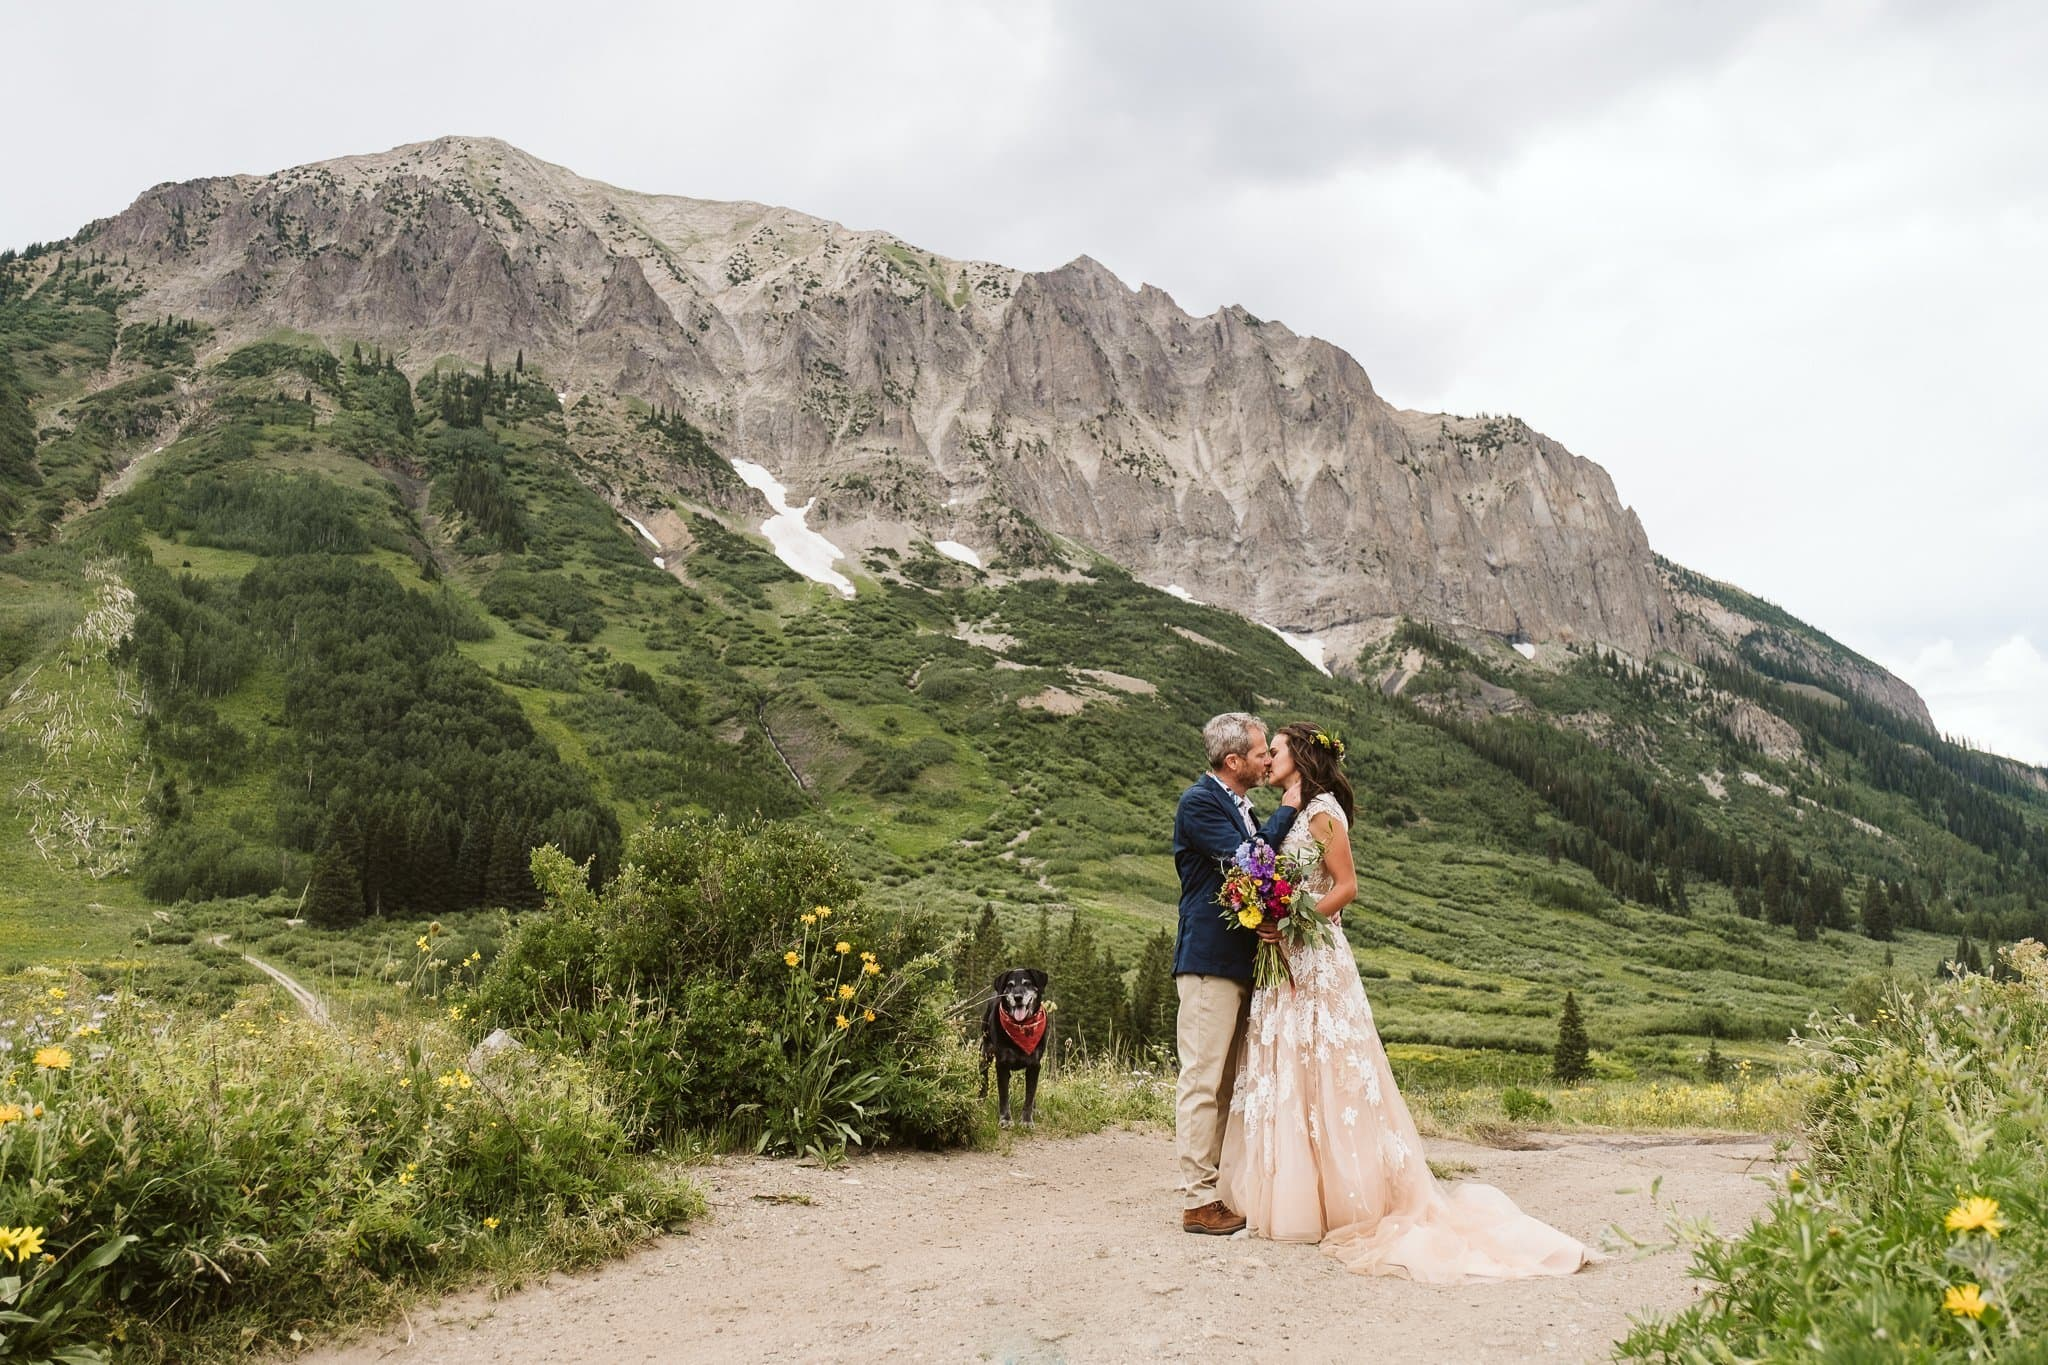 Crested Butte wedding in mountains with wildflowers, Colorado wedding photographer